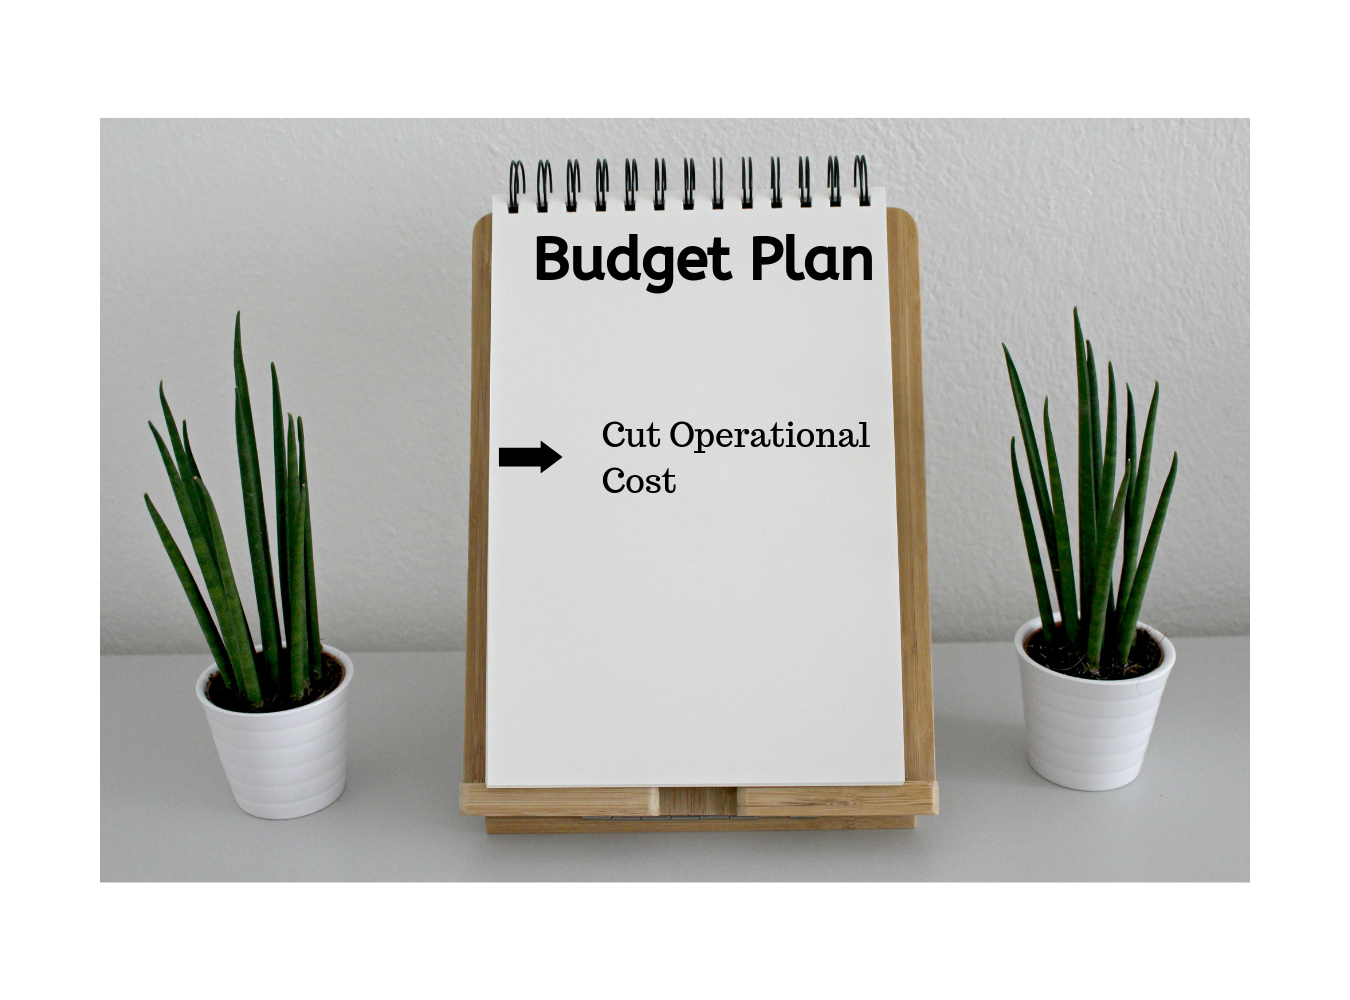 outsourcing saves cost budget plan